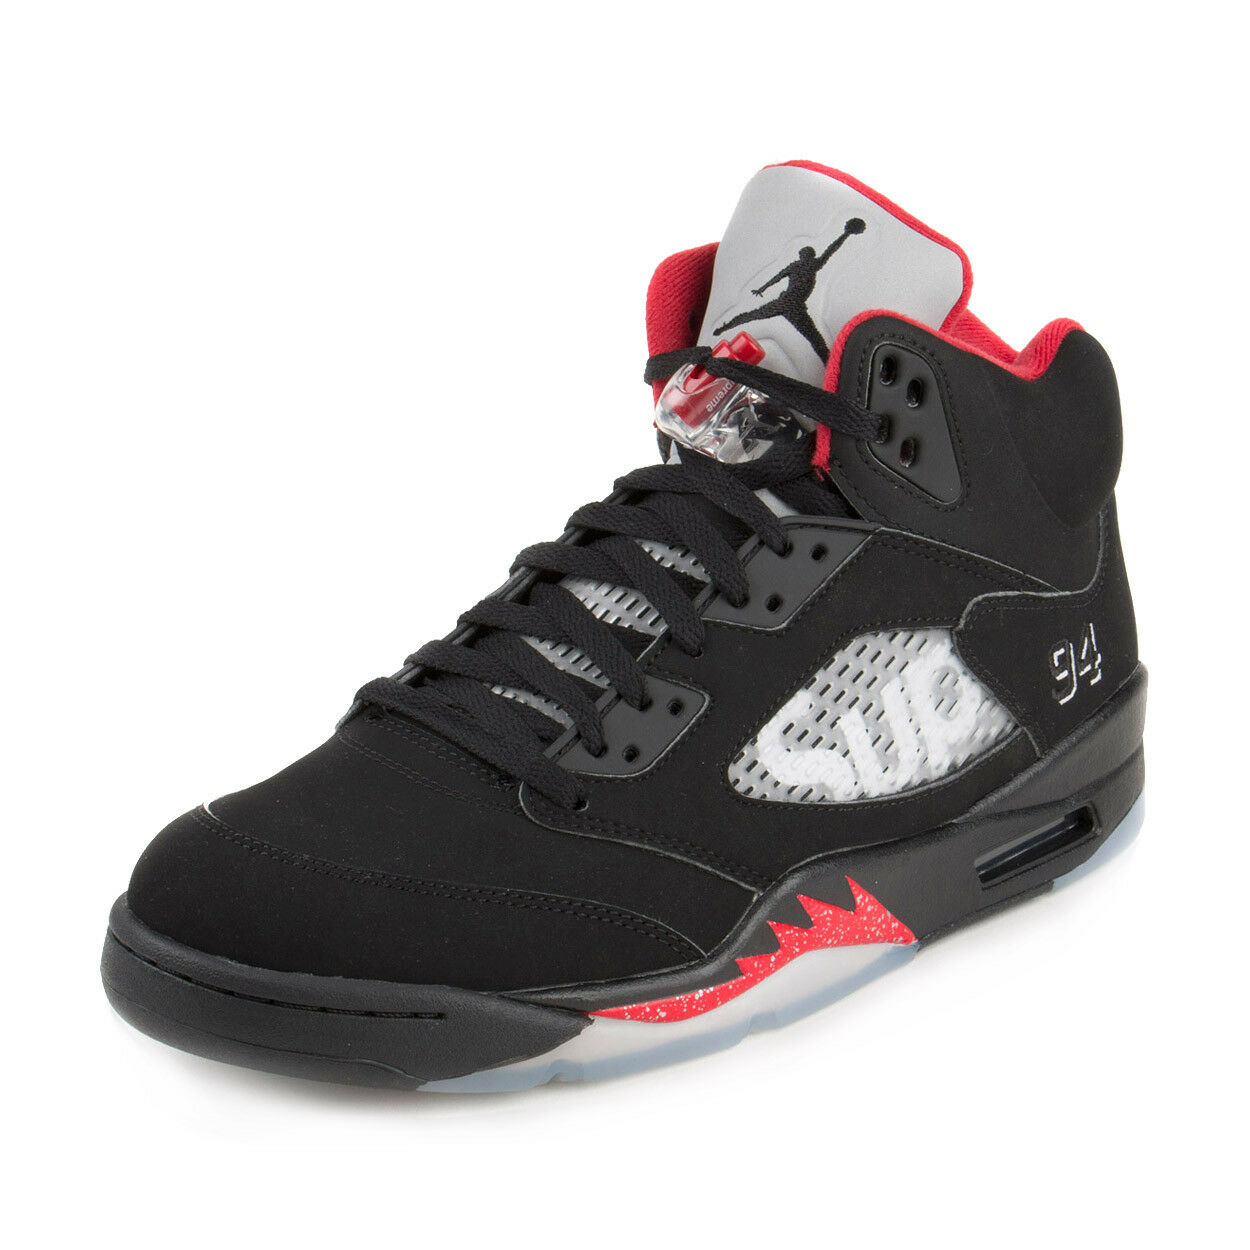 Nike Mens Air Jordan 5 Retro Supreme Black White-Varsity Red 824371-001